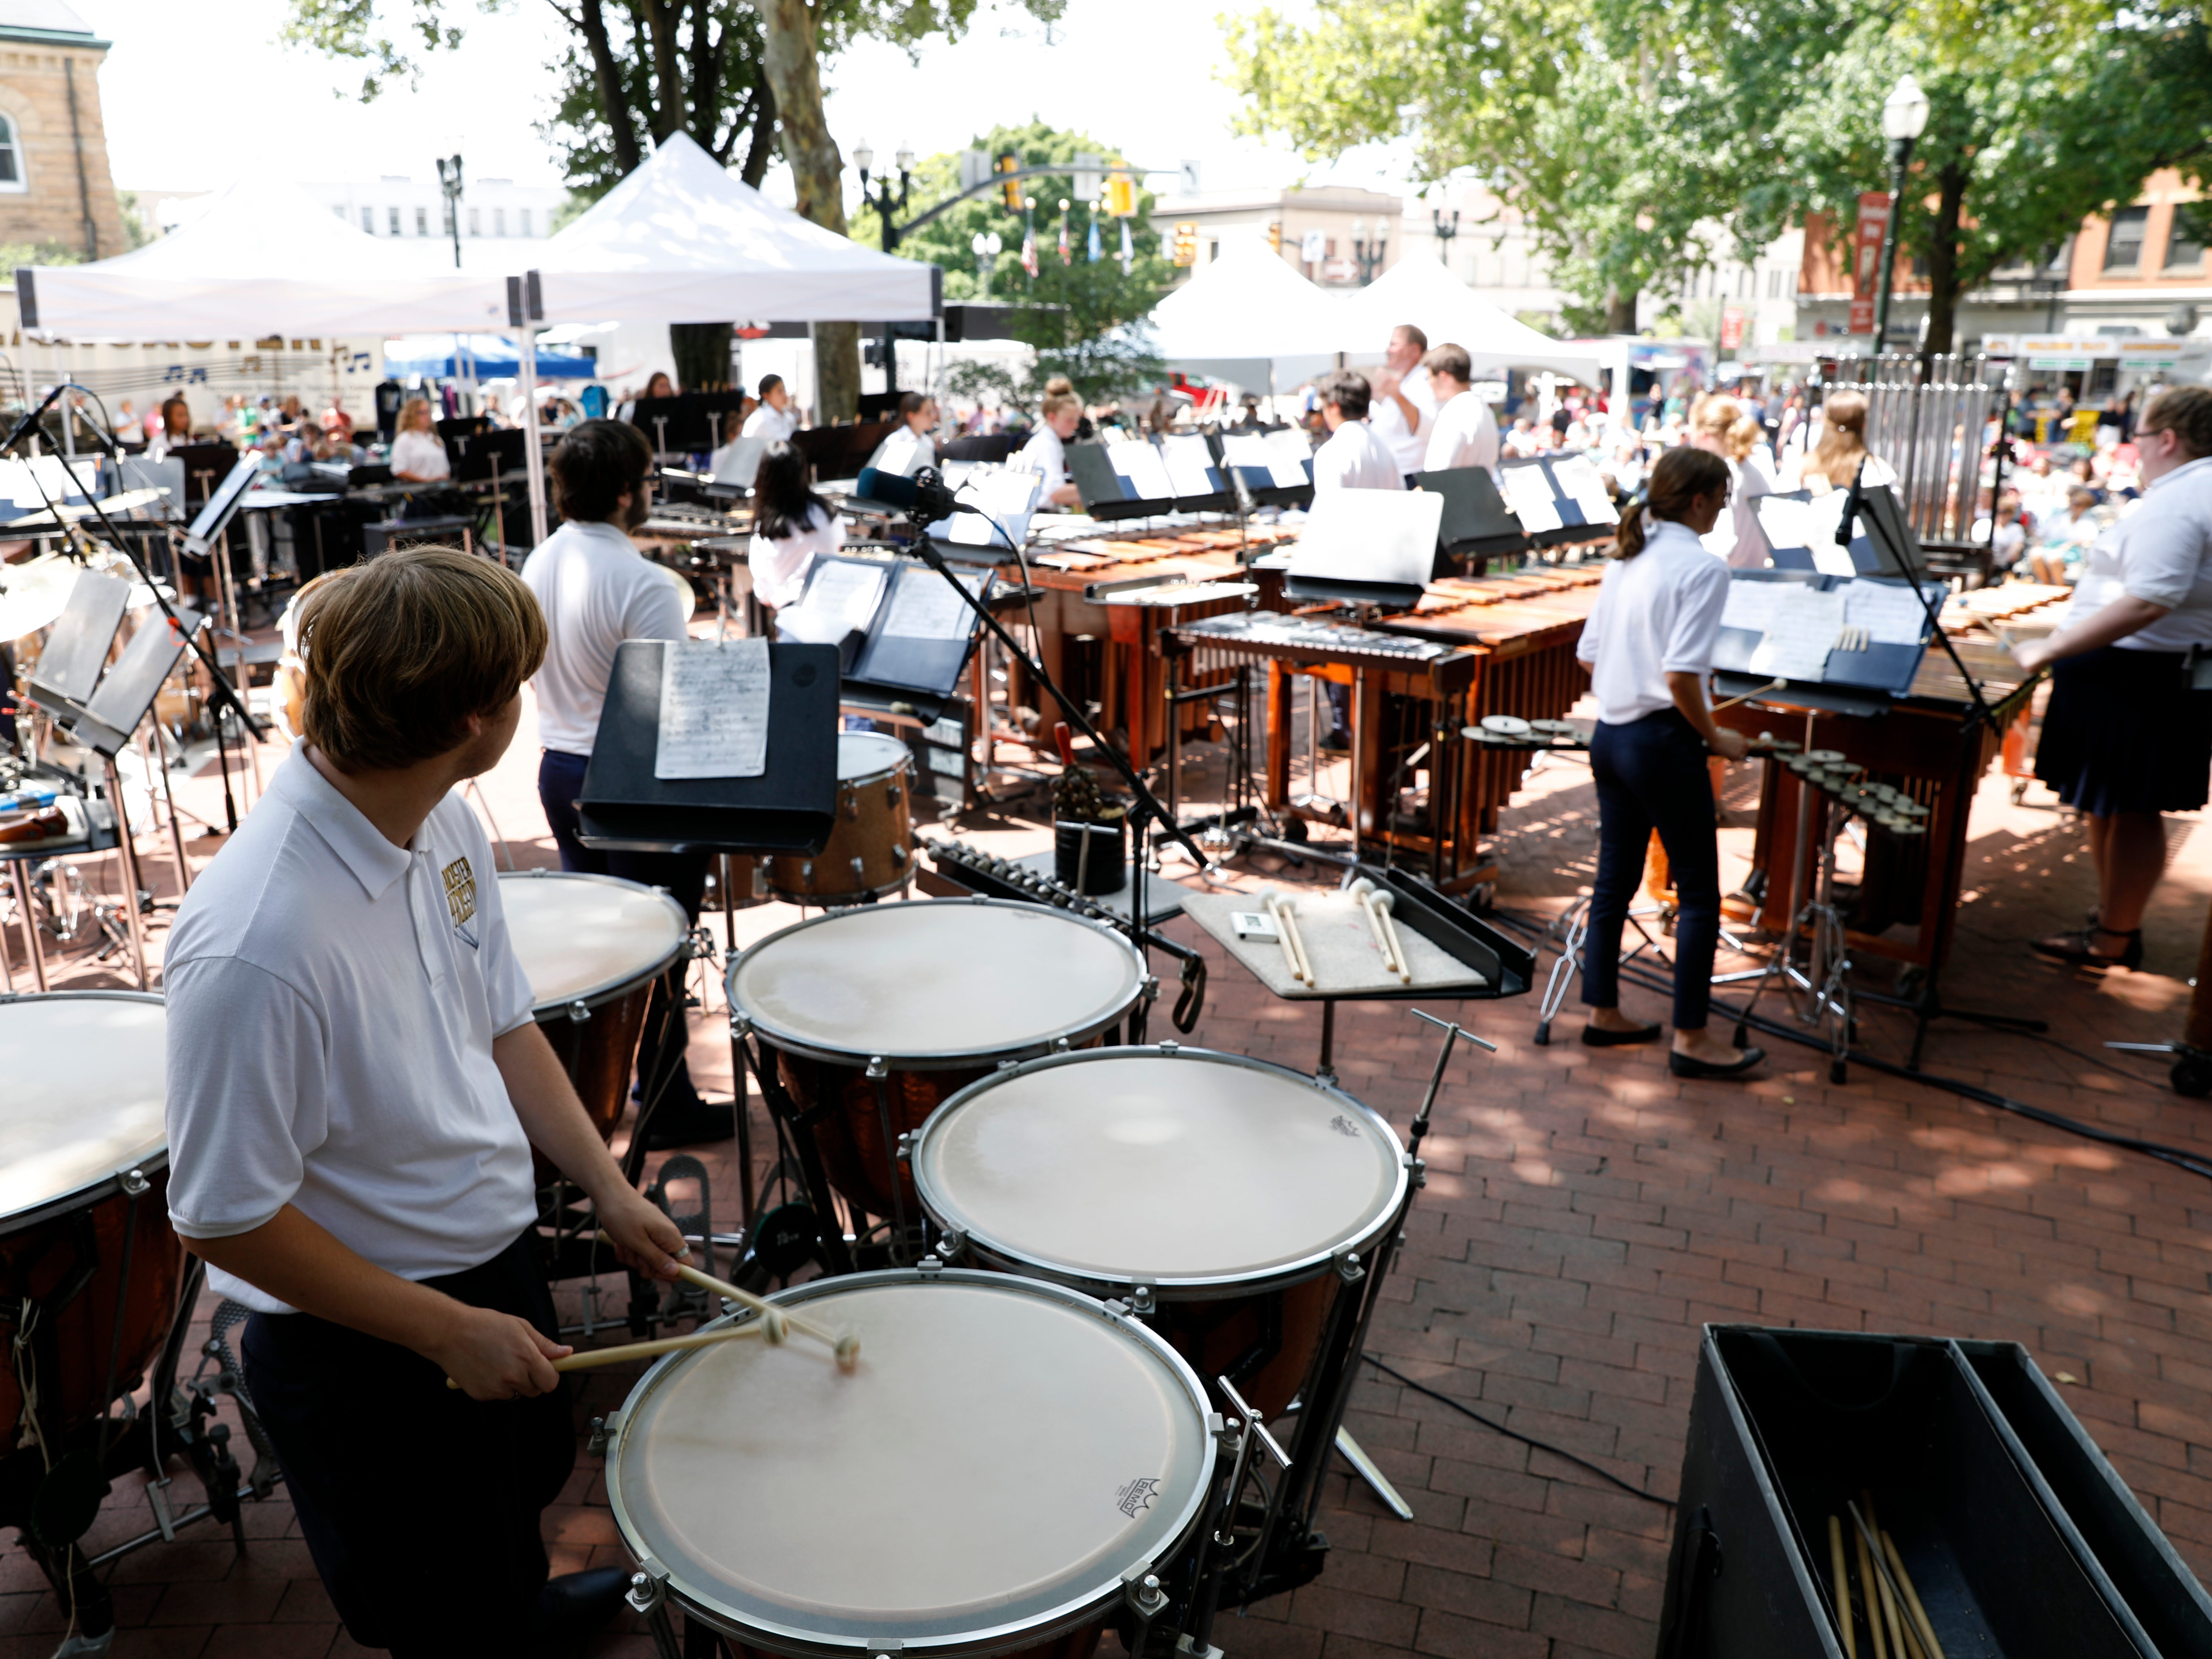 Nich Oettinger plays the timpani Wednesday, July 25, 2018, in downtown Lancater. Oettinger and other members of the Lancaster High School Percussion Ensemble performed a midday concert for the Lancaster Festival.